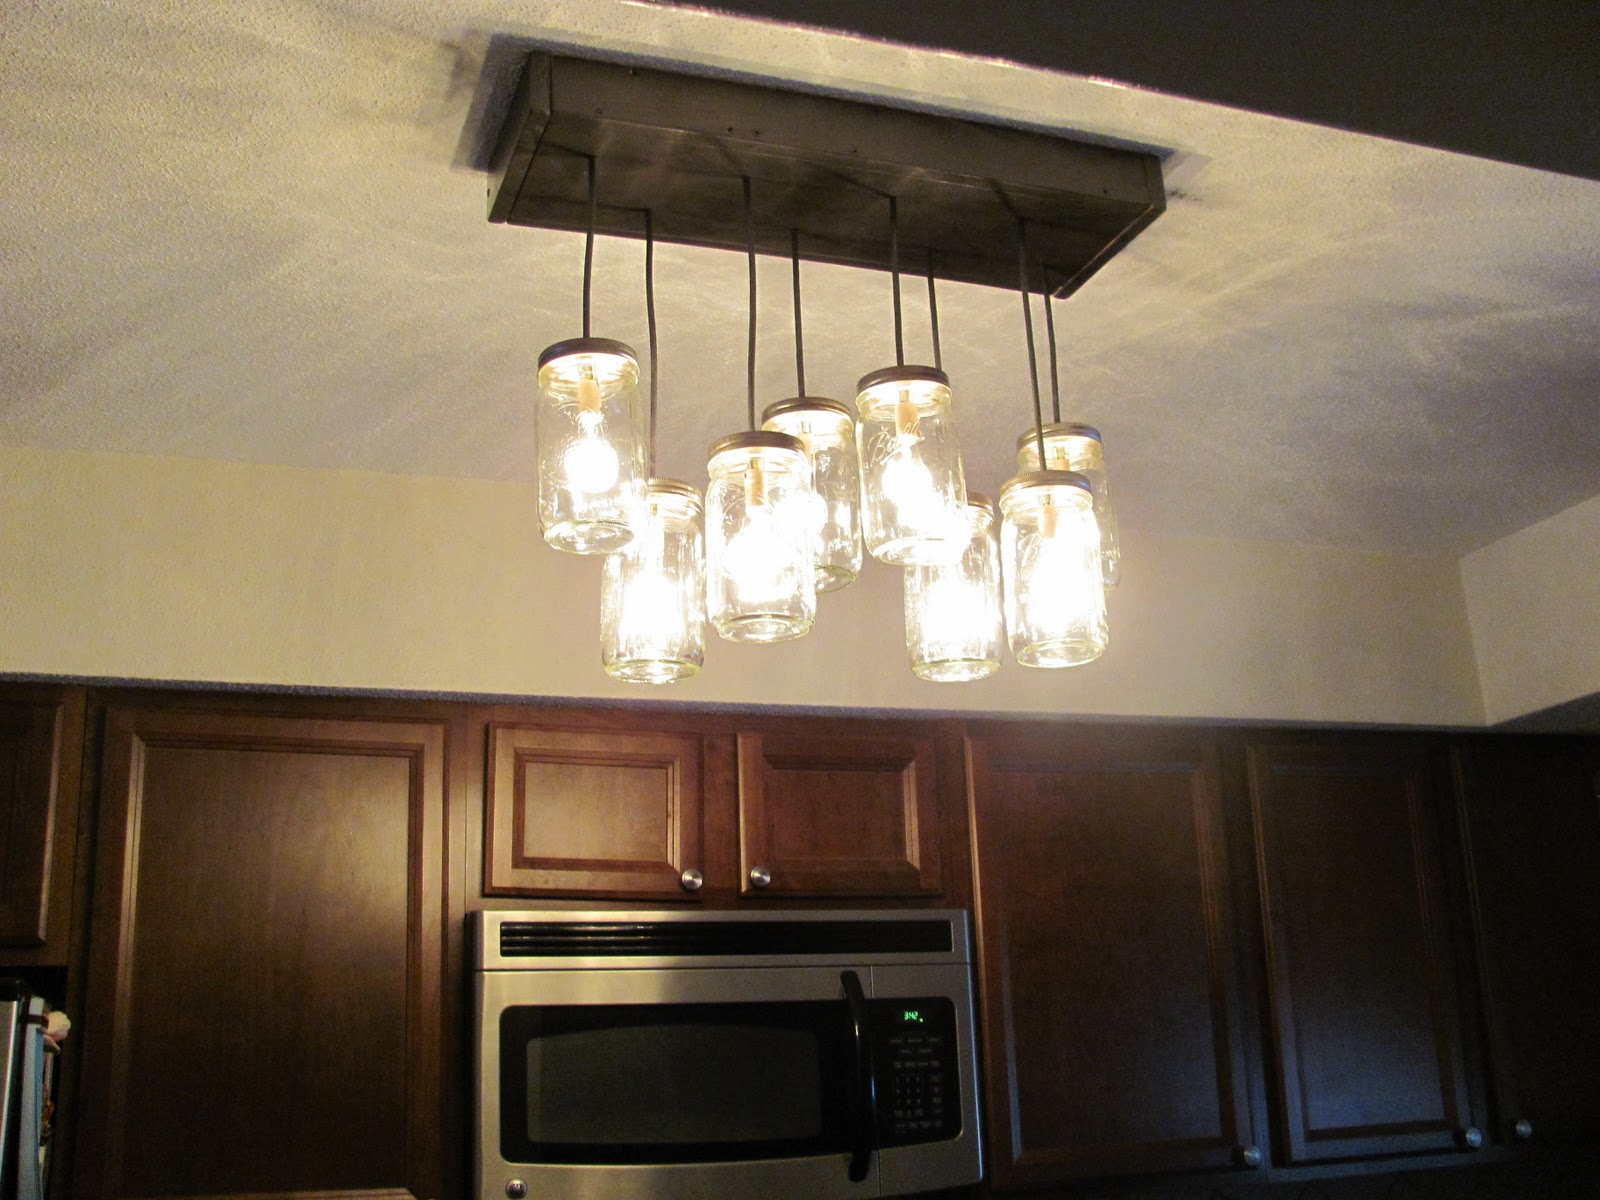 jar lighting fixtures. Sophisticated Mason Jar Lighting Fixtures For Kitchen On White Ceiling And Built In Oven N